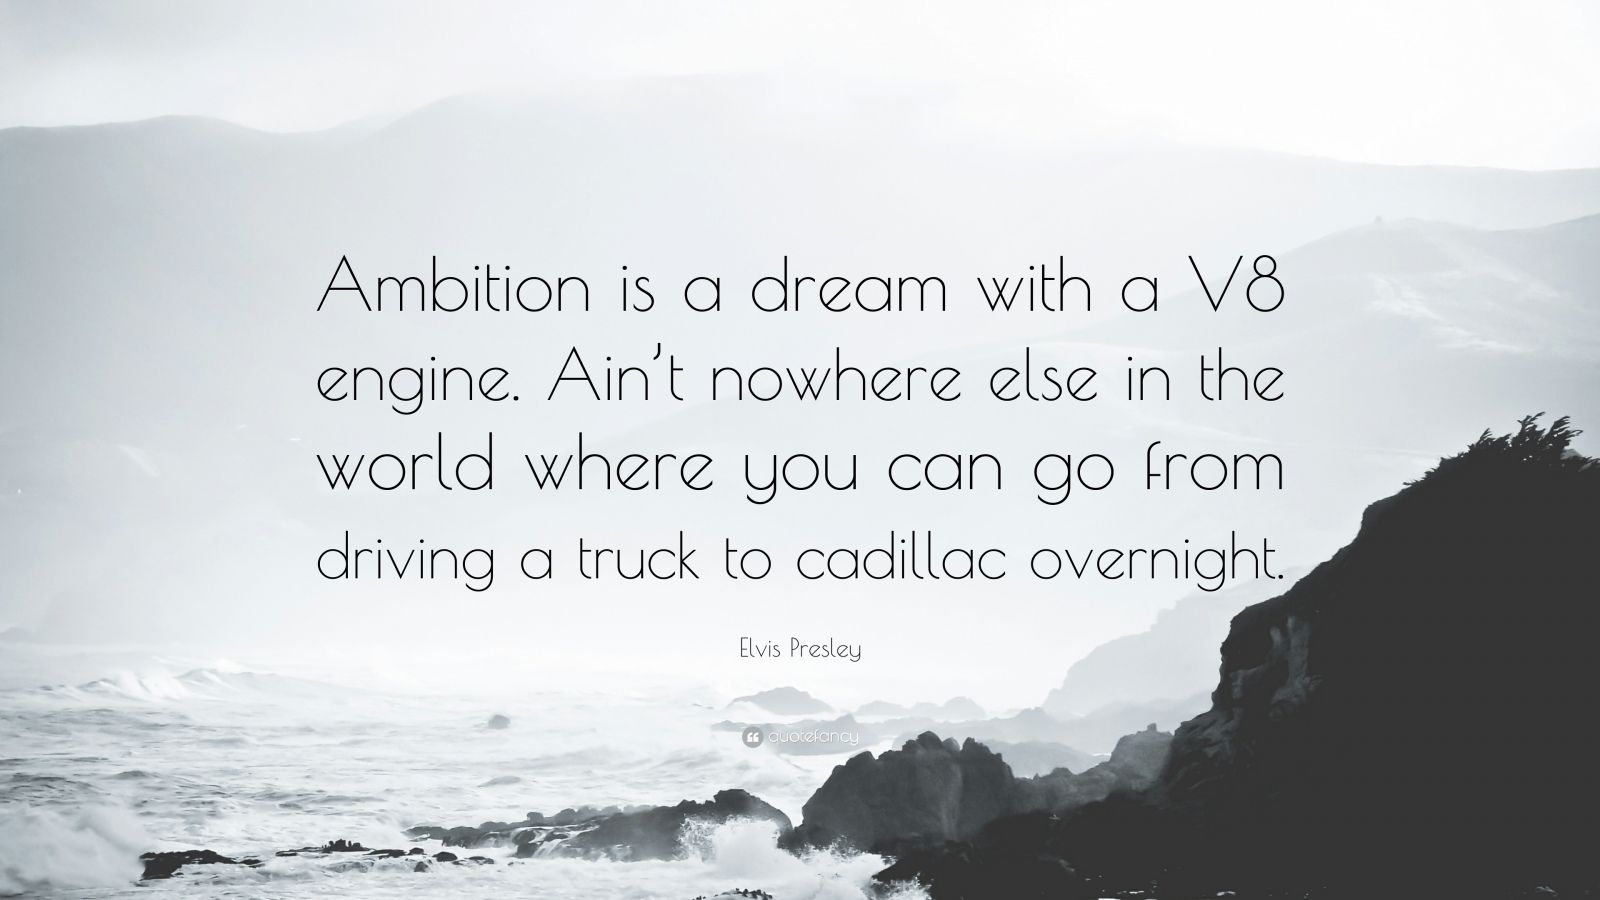 """Elvis Presley Quote: """"Ambition is a dream with a V8 engine. Ain't nowhere else in the world where you can go from driving a truck to cadillac overnight."""""""